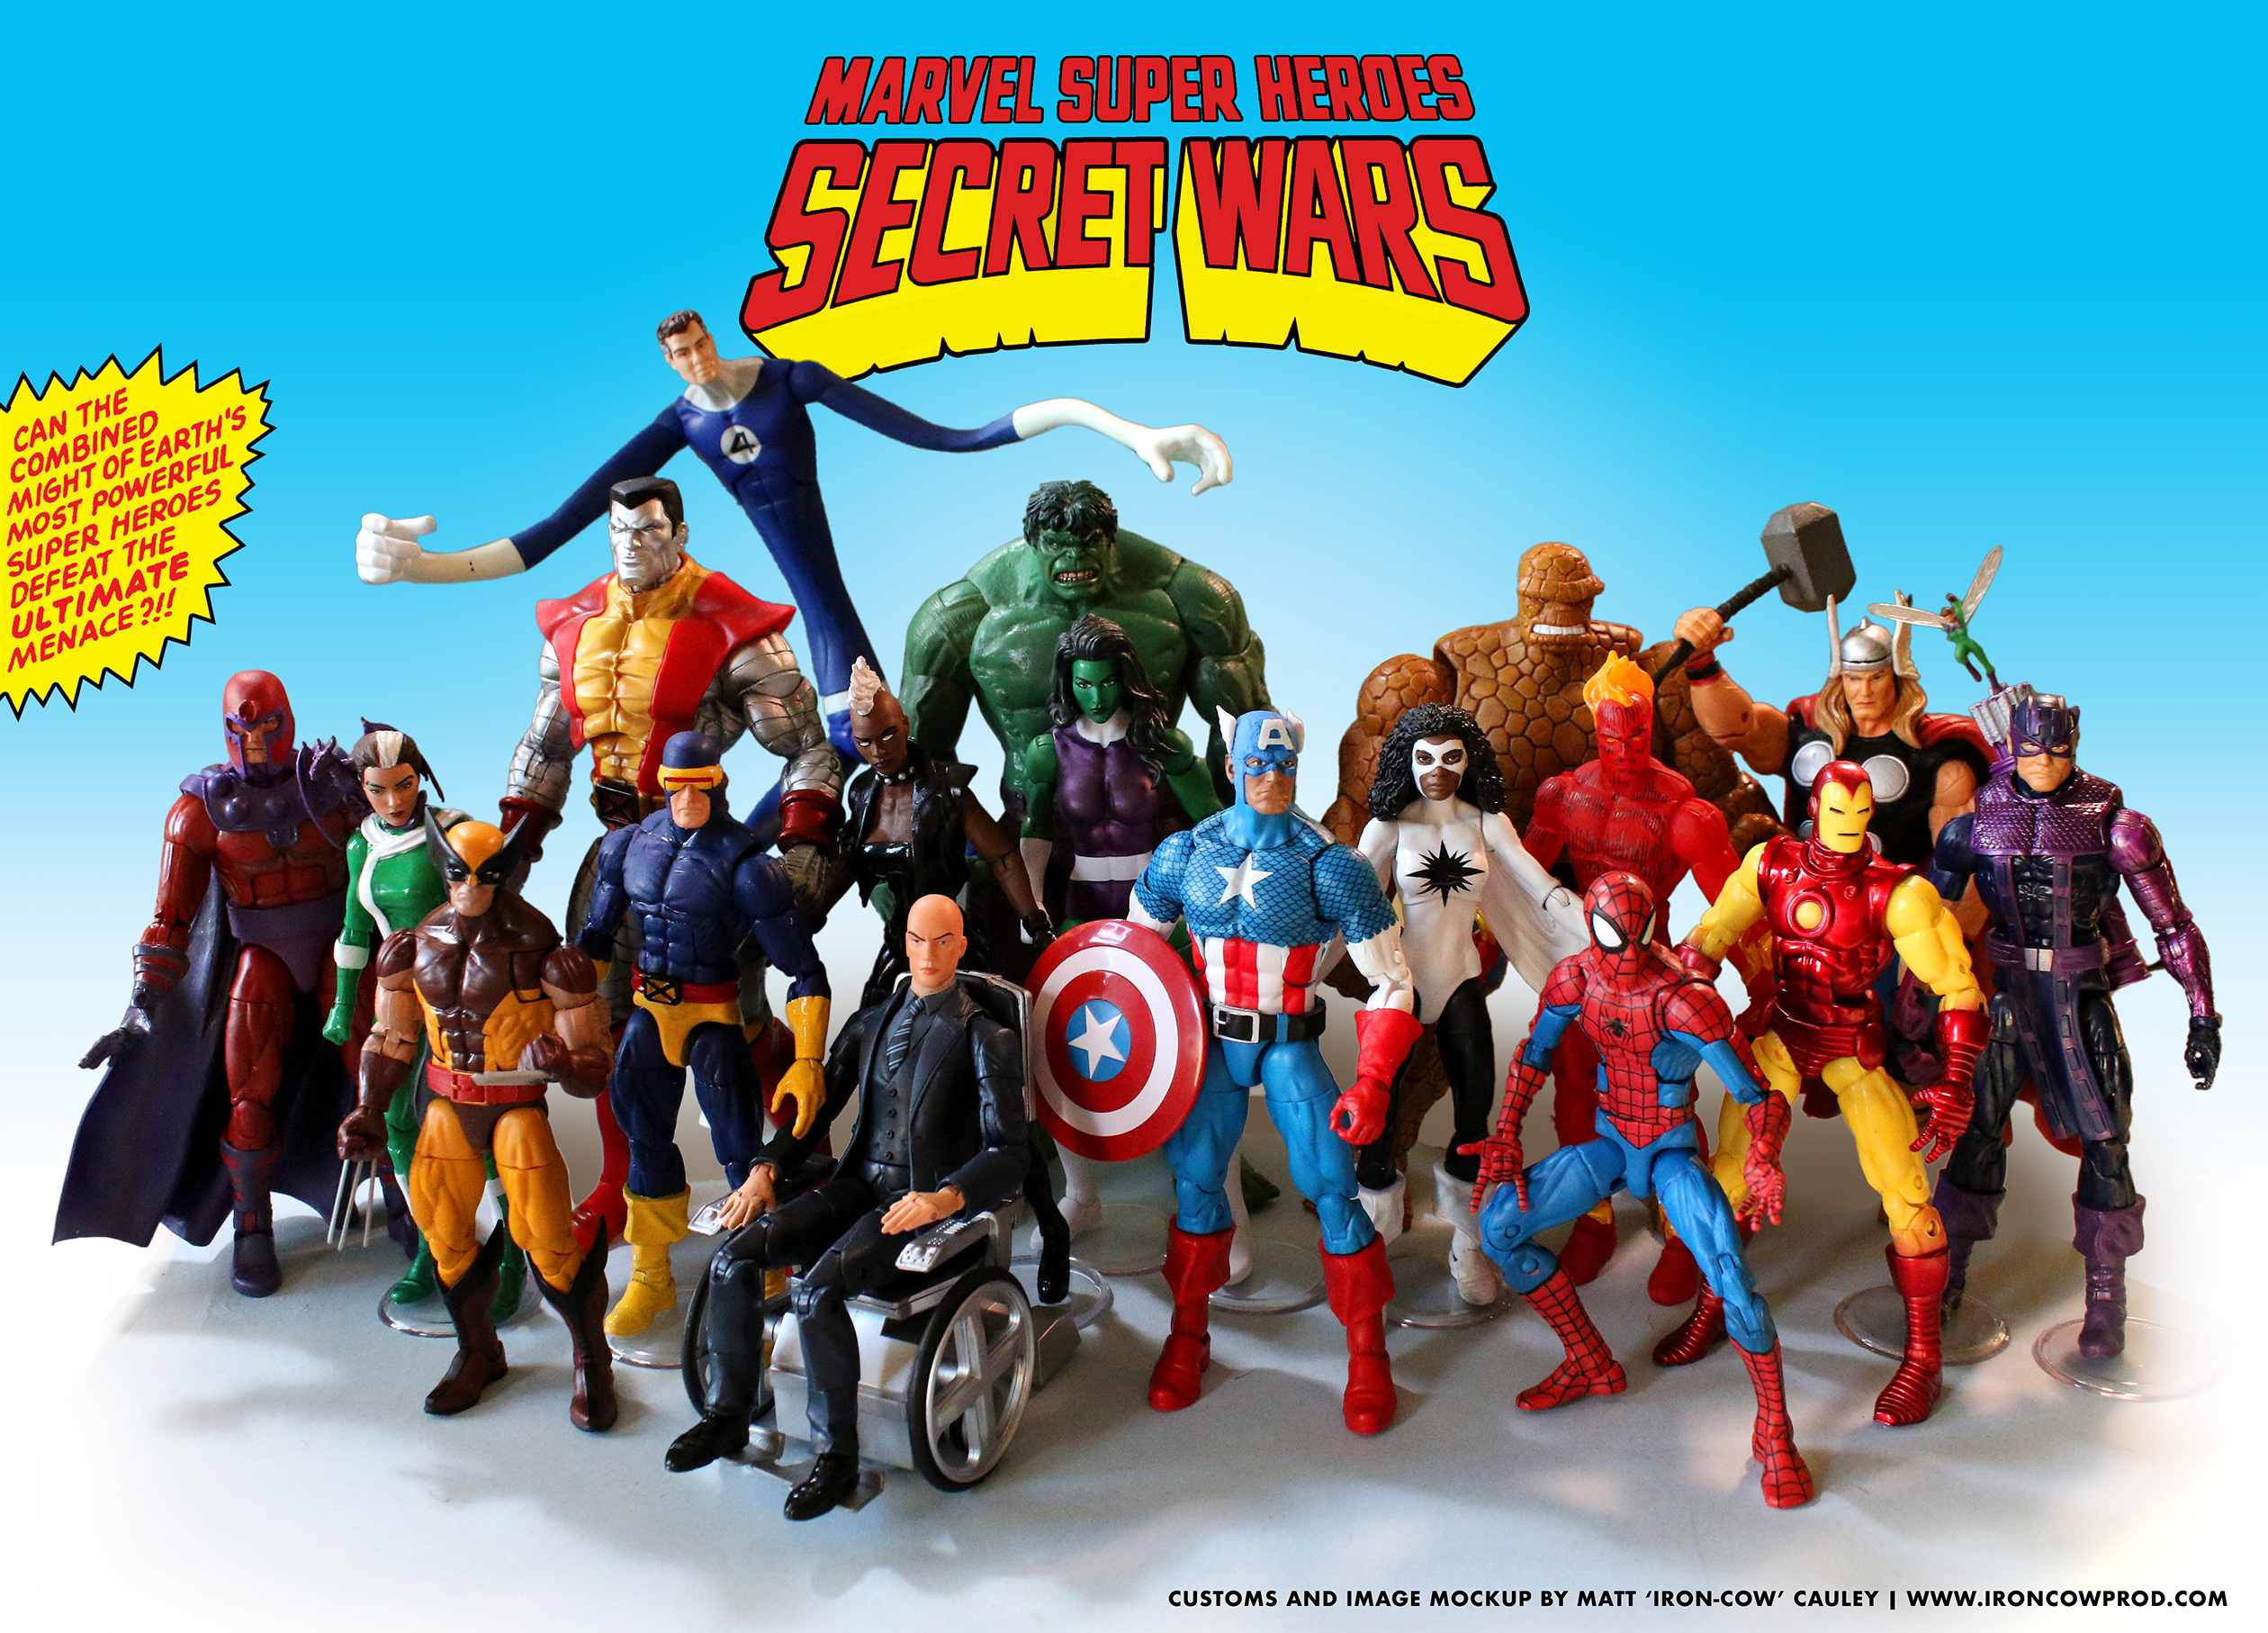 Marvel Super Heroes 60 Superhéroes: Iron-Cow Productions » New Customs! Marvel Superheroes